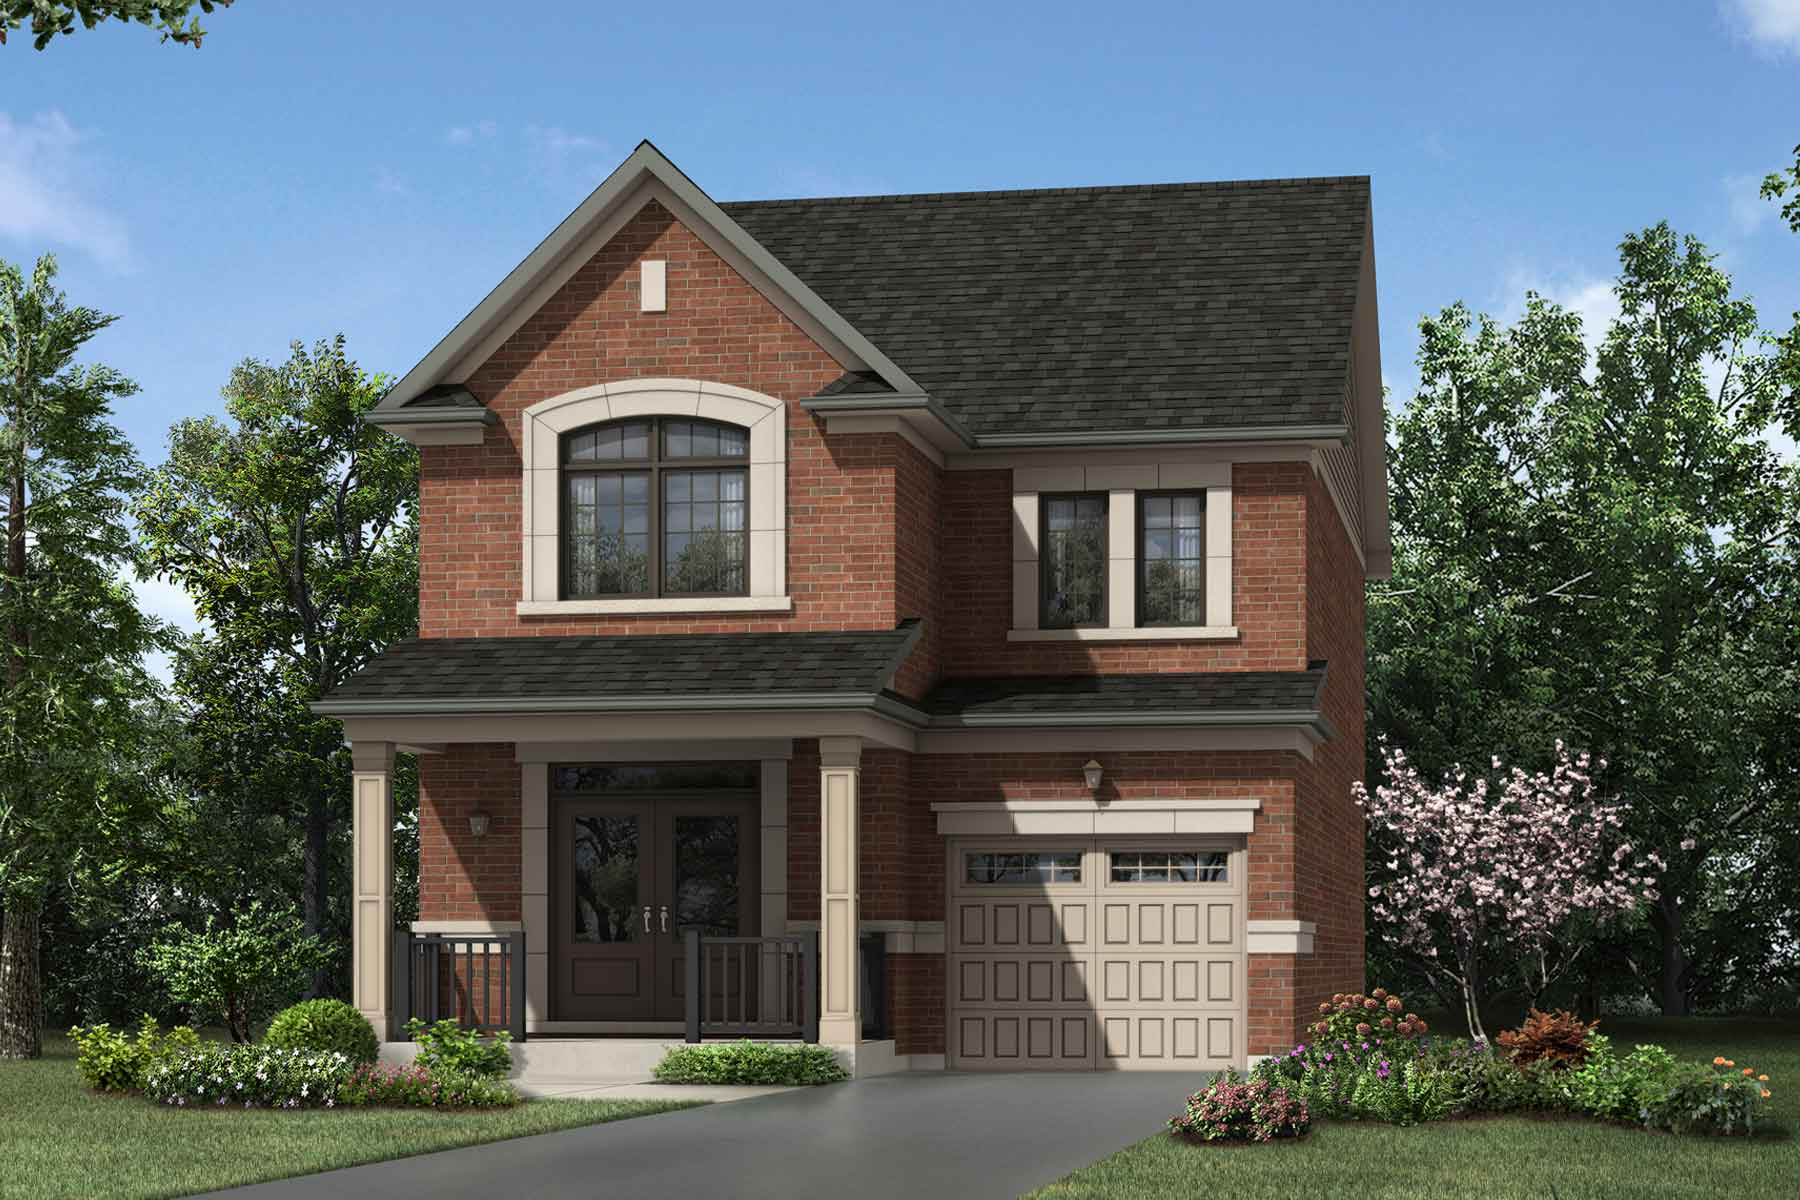 Elgin Plan Elevation Front at Seaton Whitevale in Pickering Ontario by Mattamy Homes